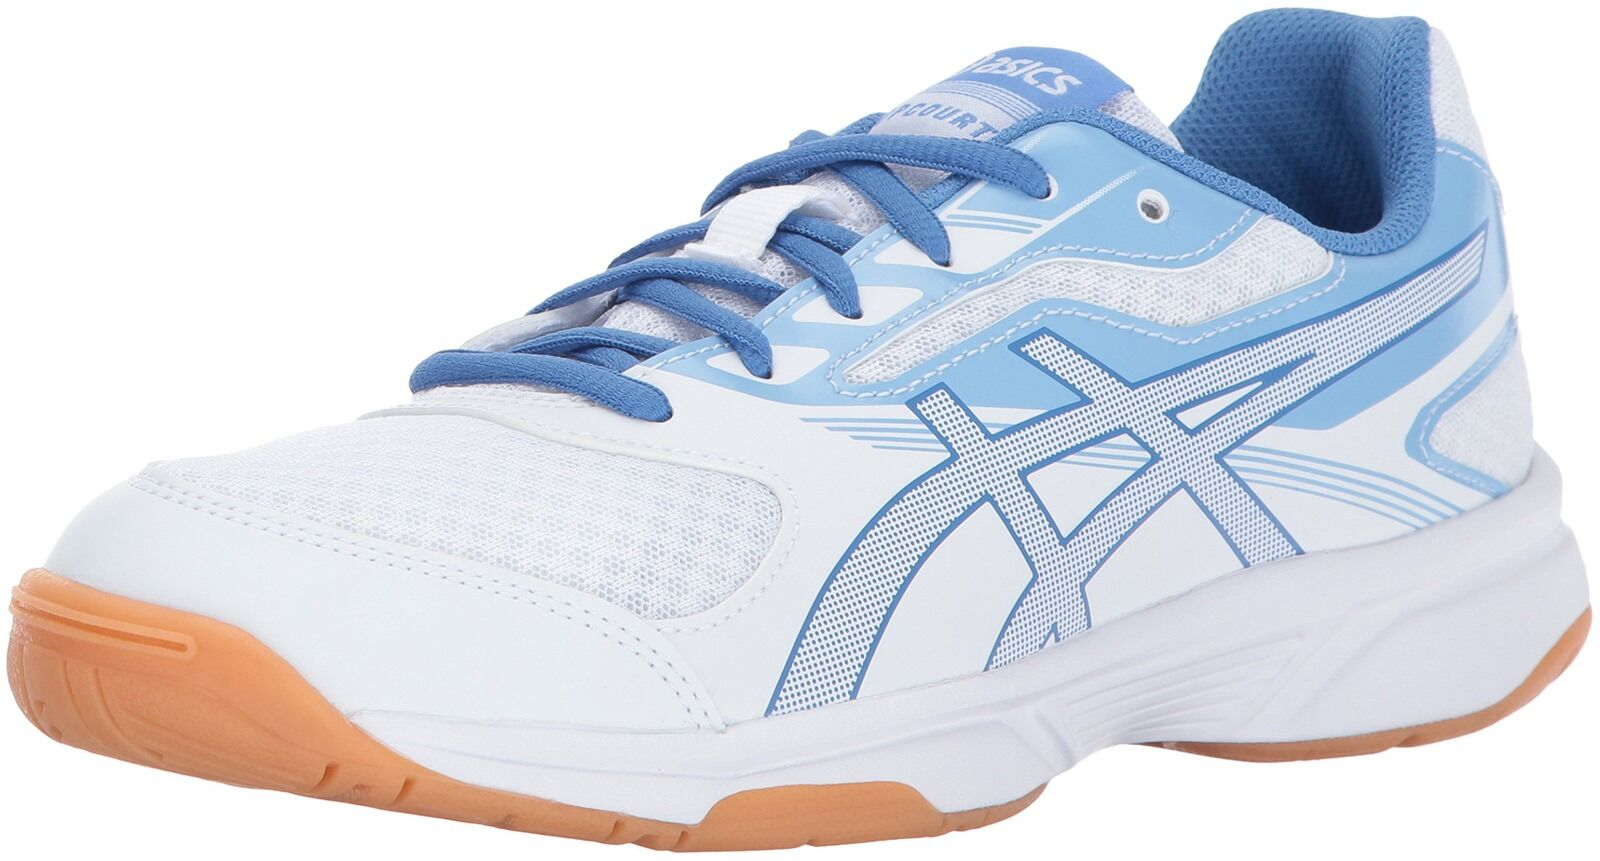 ASICS Women's Upcourt 2 Volleyball Shoe, White/Regatta Blue/Airly Blue, 12